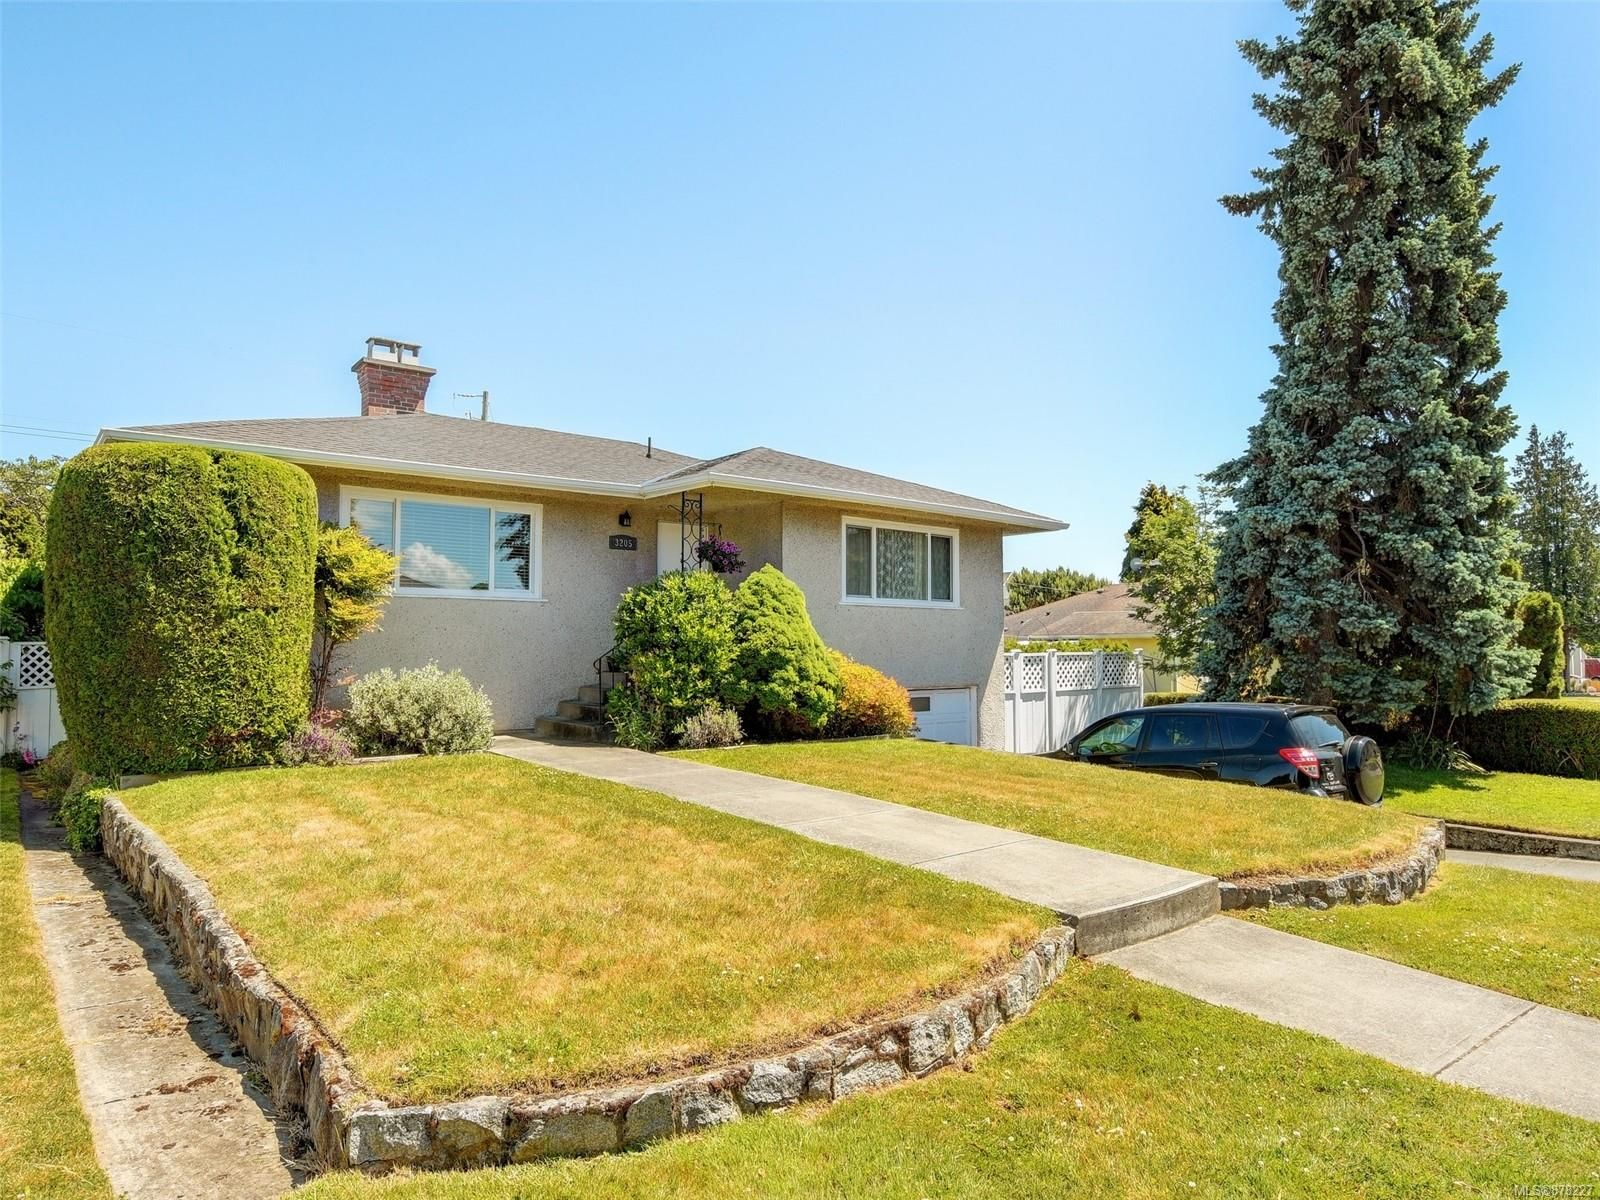 Main Photo: 3205 Carman St in : SE Camosun House for sale (Saanich East)  : MLS®# 878227